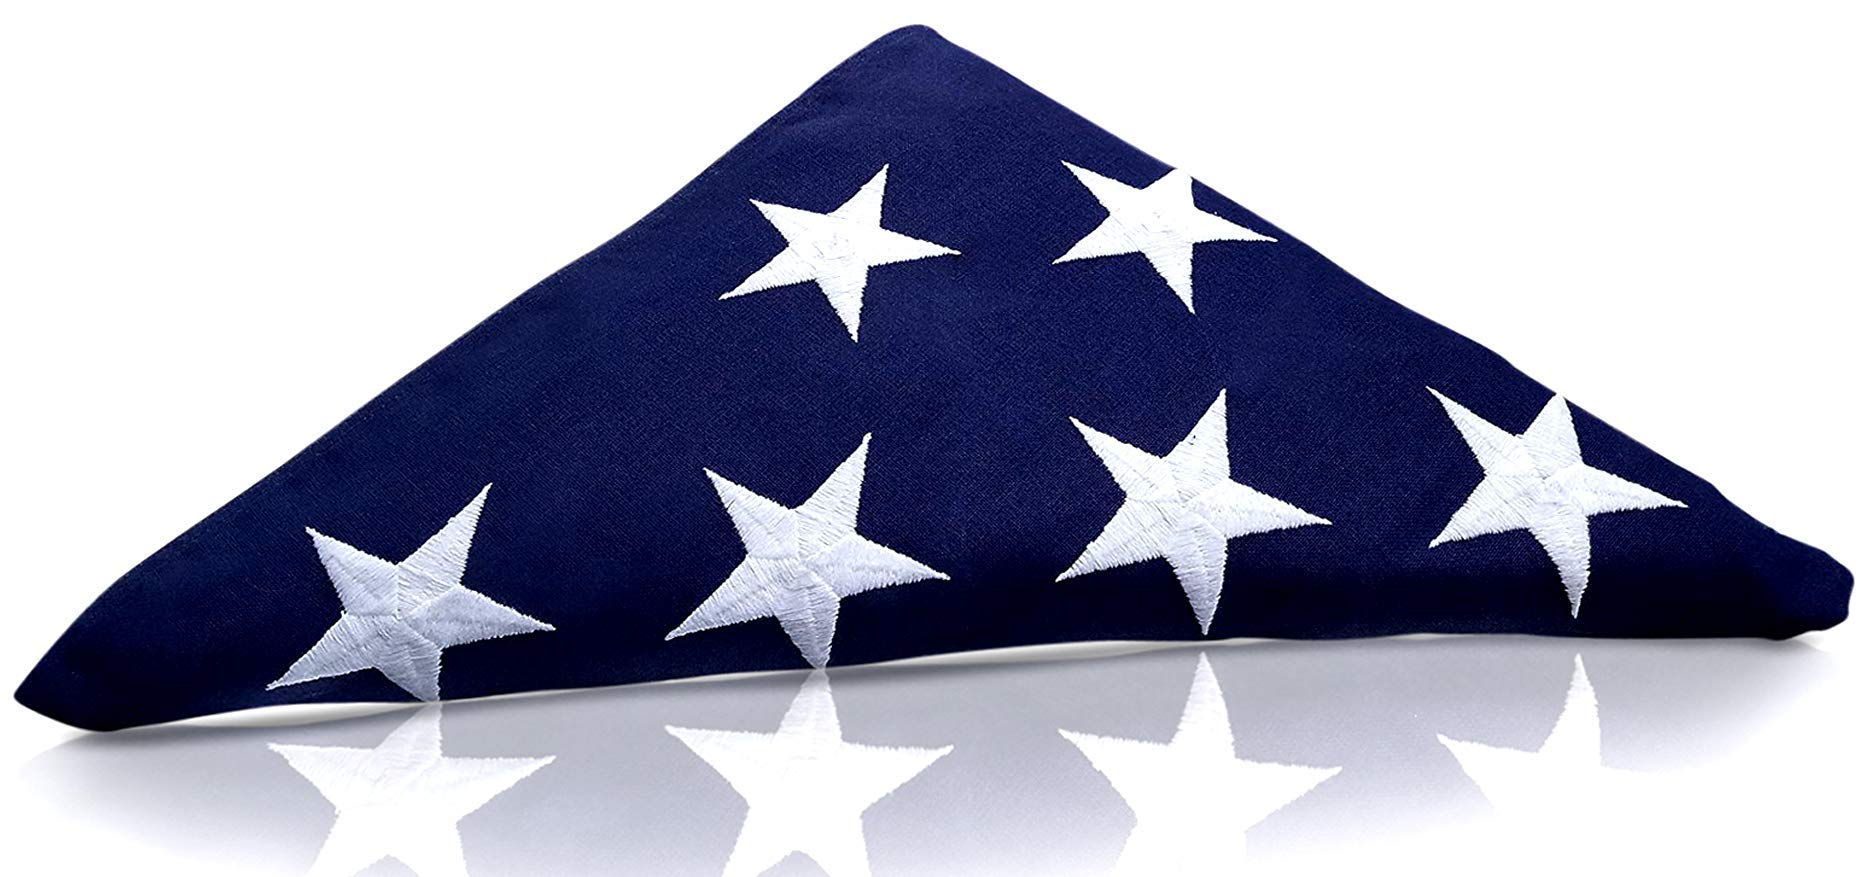 Tillery Innovations PRE-Folded Premium US Burial Flag, 5' x 9.5' Made in The USA with Fully Embroidered Stars and Sewn Stripes for US Veterans, Internment, Flag Ceremony, Memorial Day